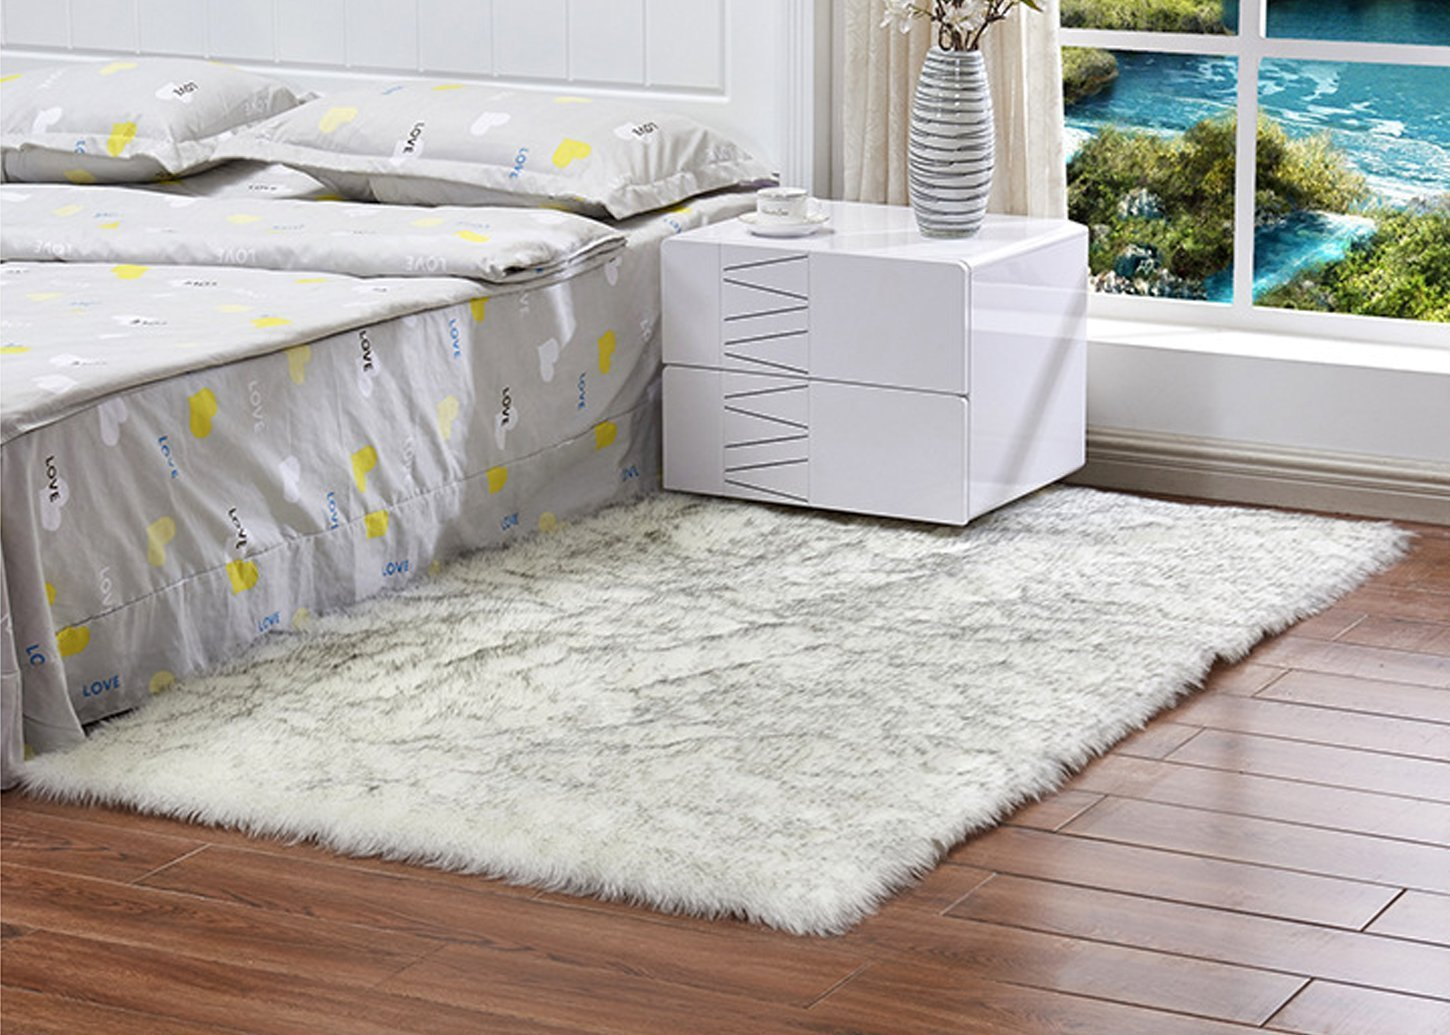 FOLWEP Wool Rug Home Sheepskin Faux Fur Area Rugs And Carpets For Living room Kids Room Coffee Table Bedroom Carpet,White with Grey Top,3.3 x 6.6 feet